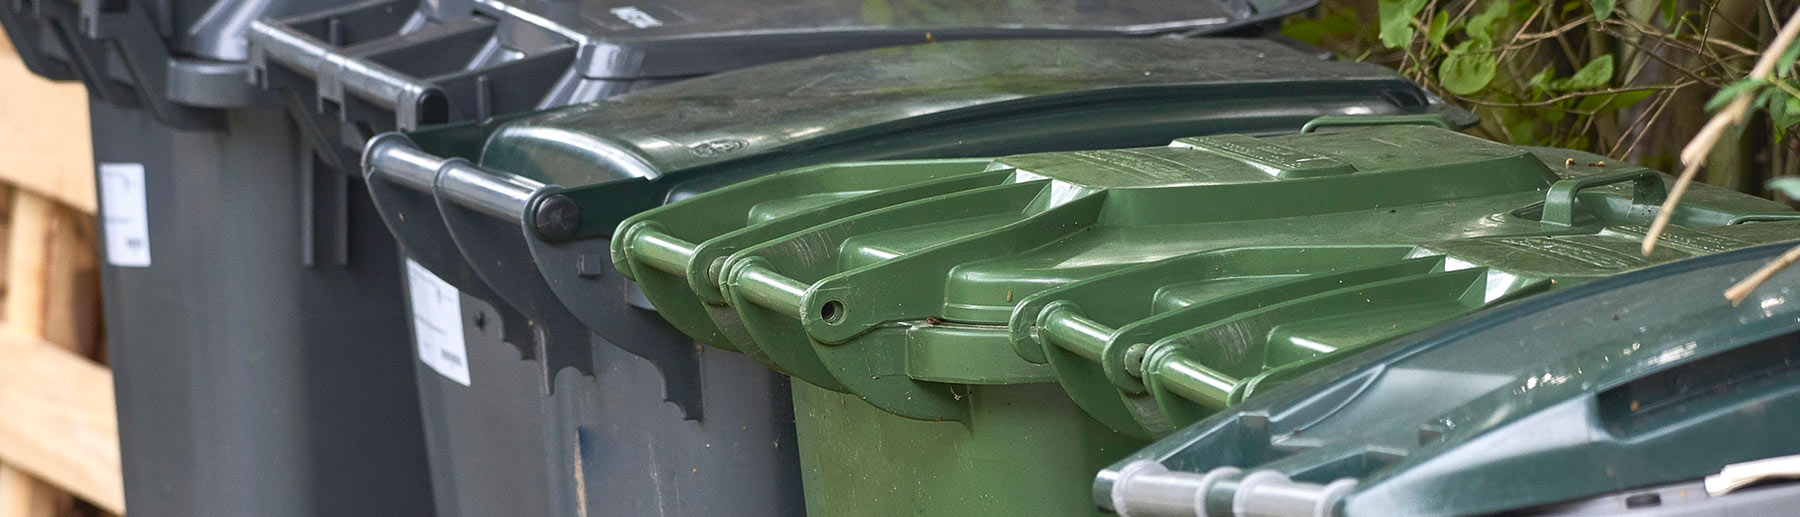 green garbage bins in a row